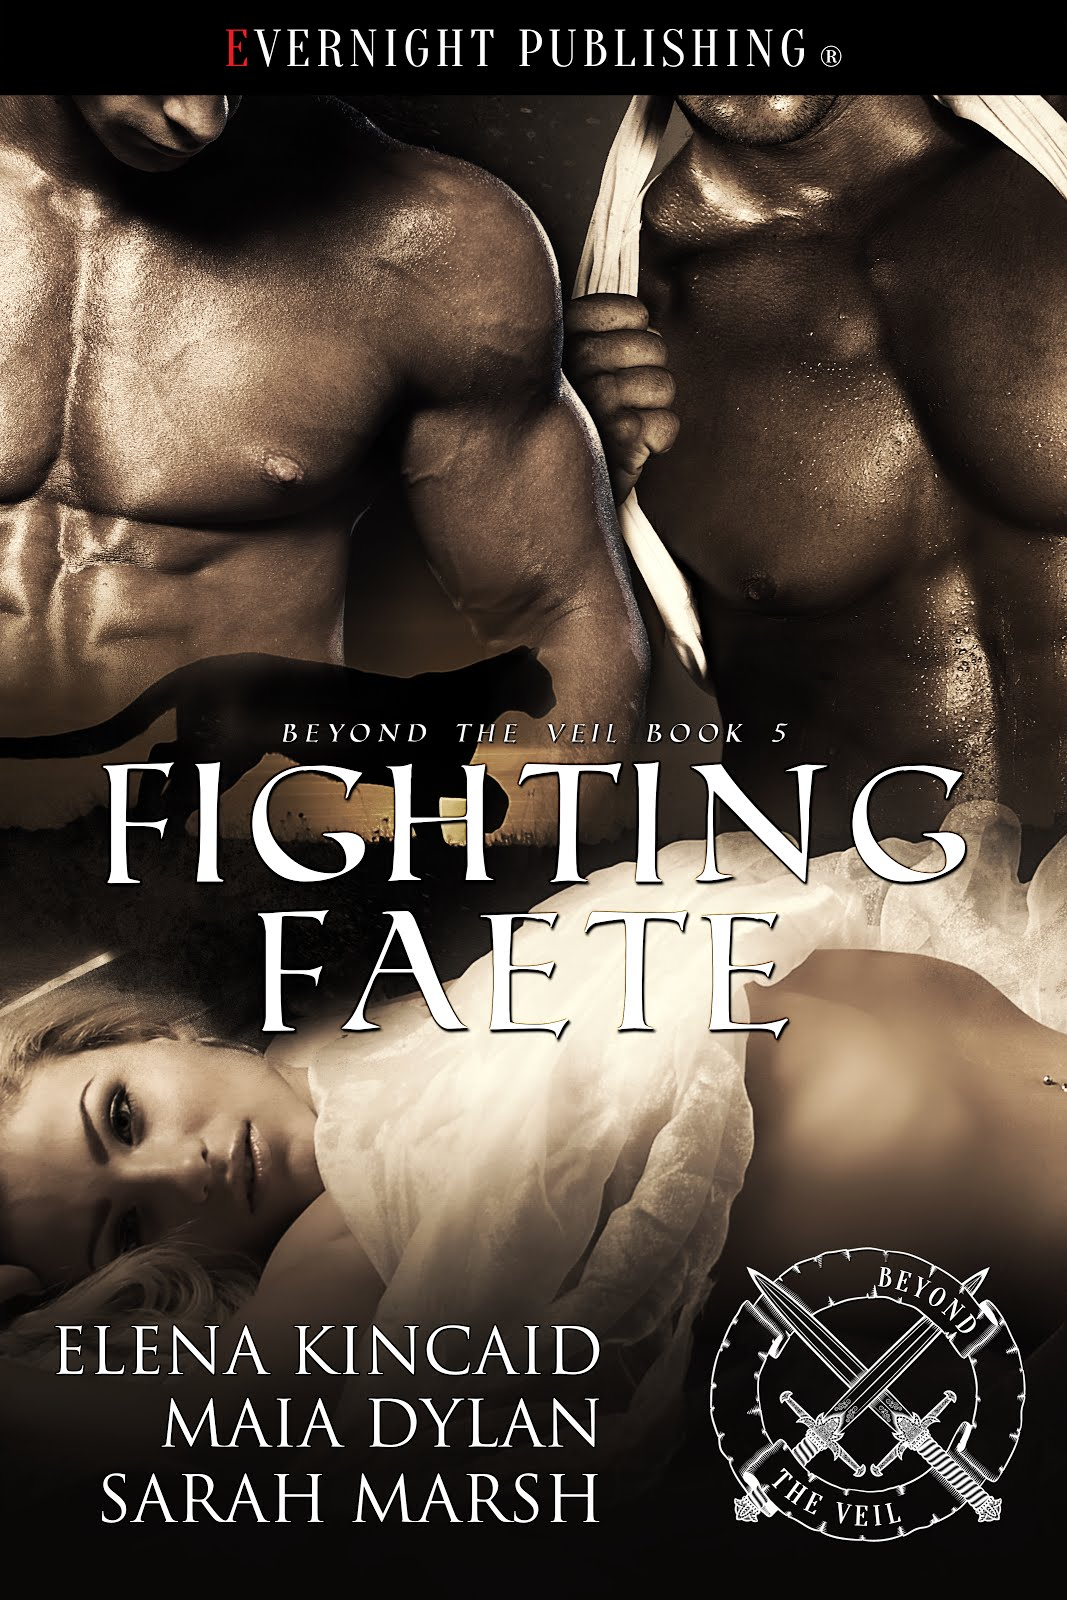 FIGHTING FAETE